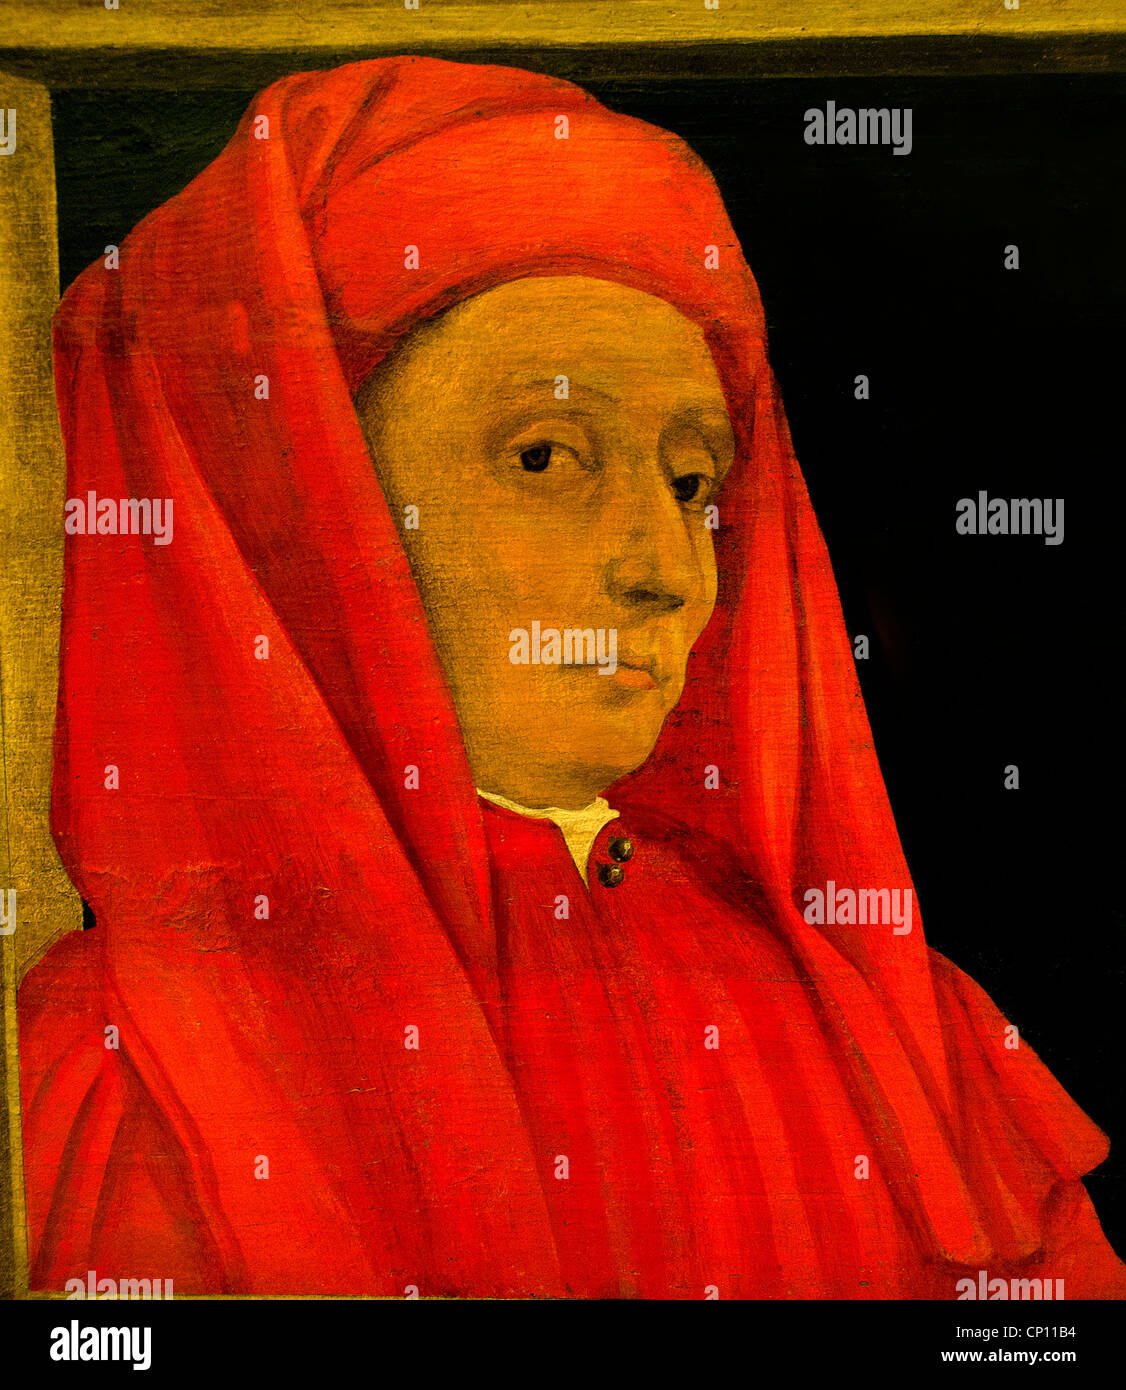 Ambrogio Bondone GIOTTO 1266-1336 The Renaissance Masters16th century  Italy Italian Stock Photo